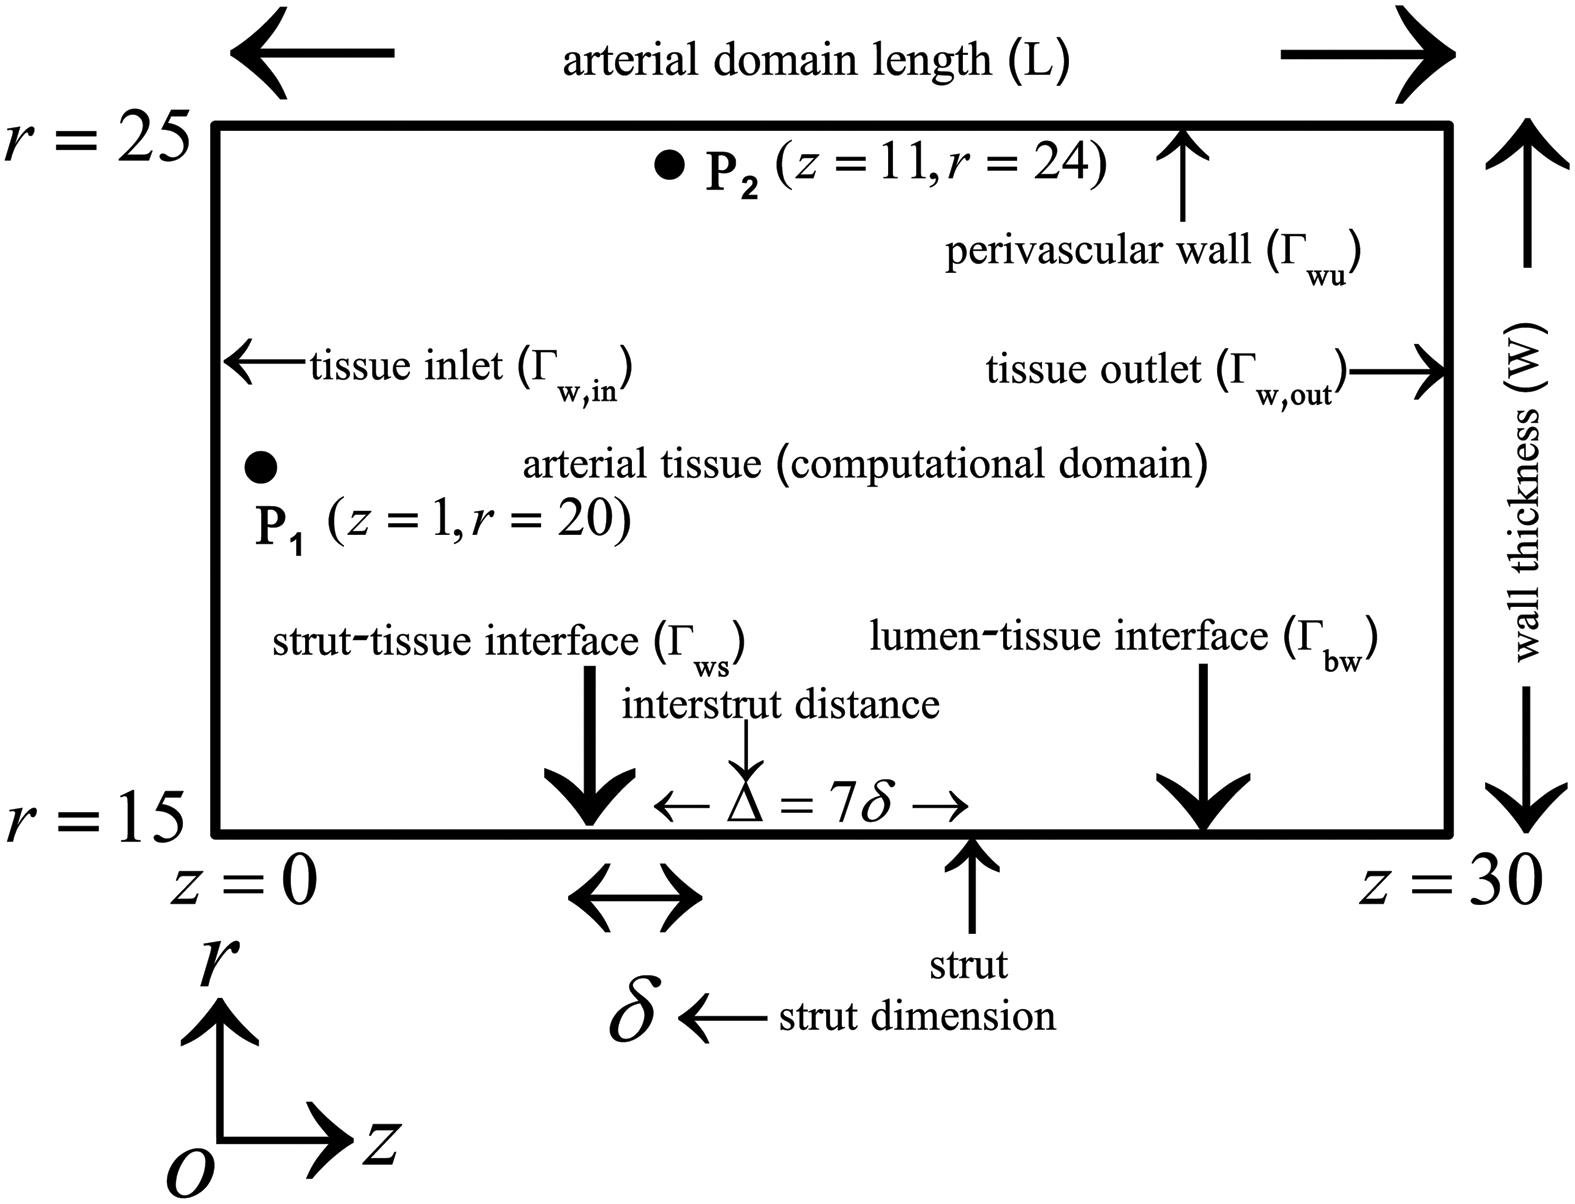 Schematic diagram of the computational domain.